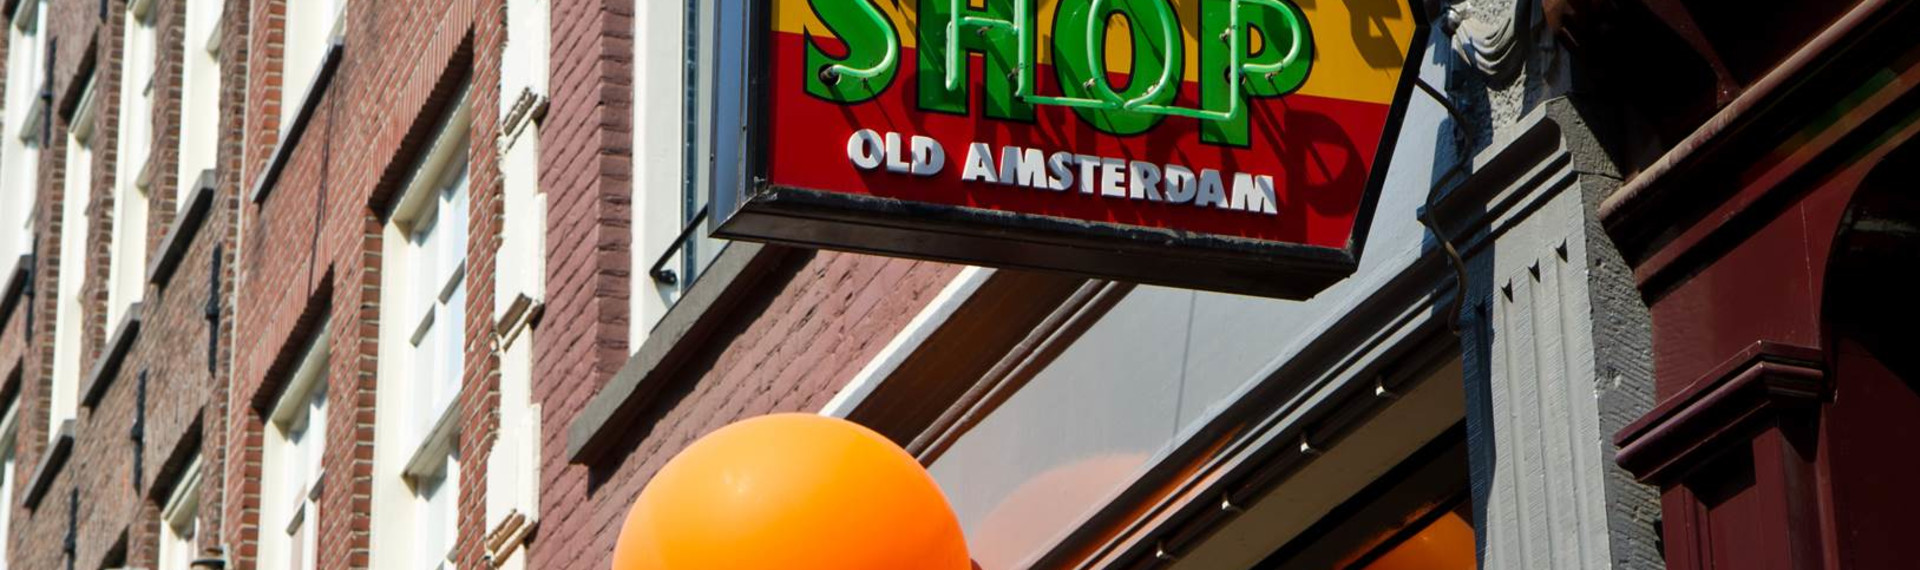 Amsterdam Coffee Shop Guide image